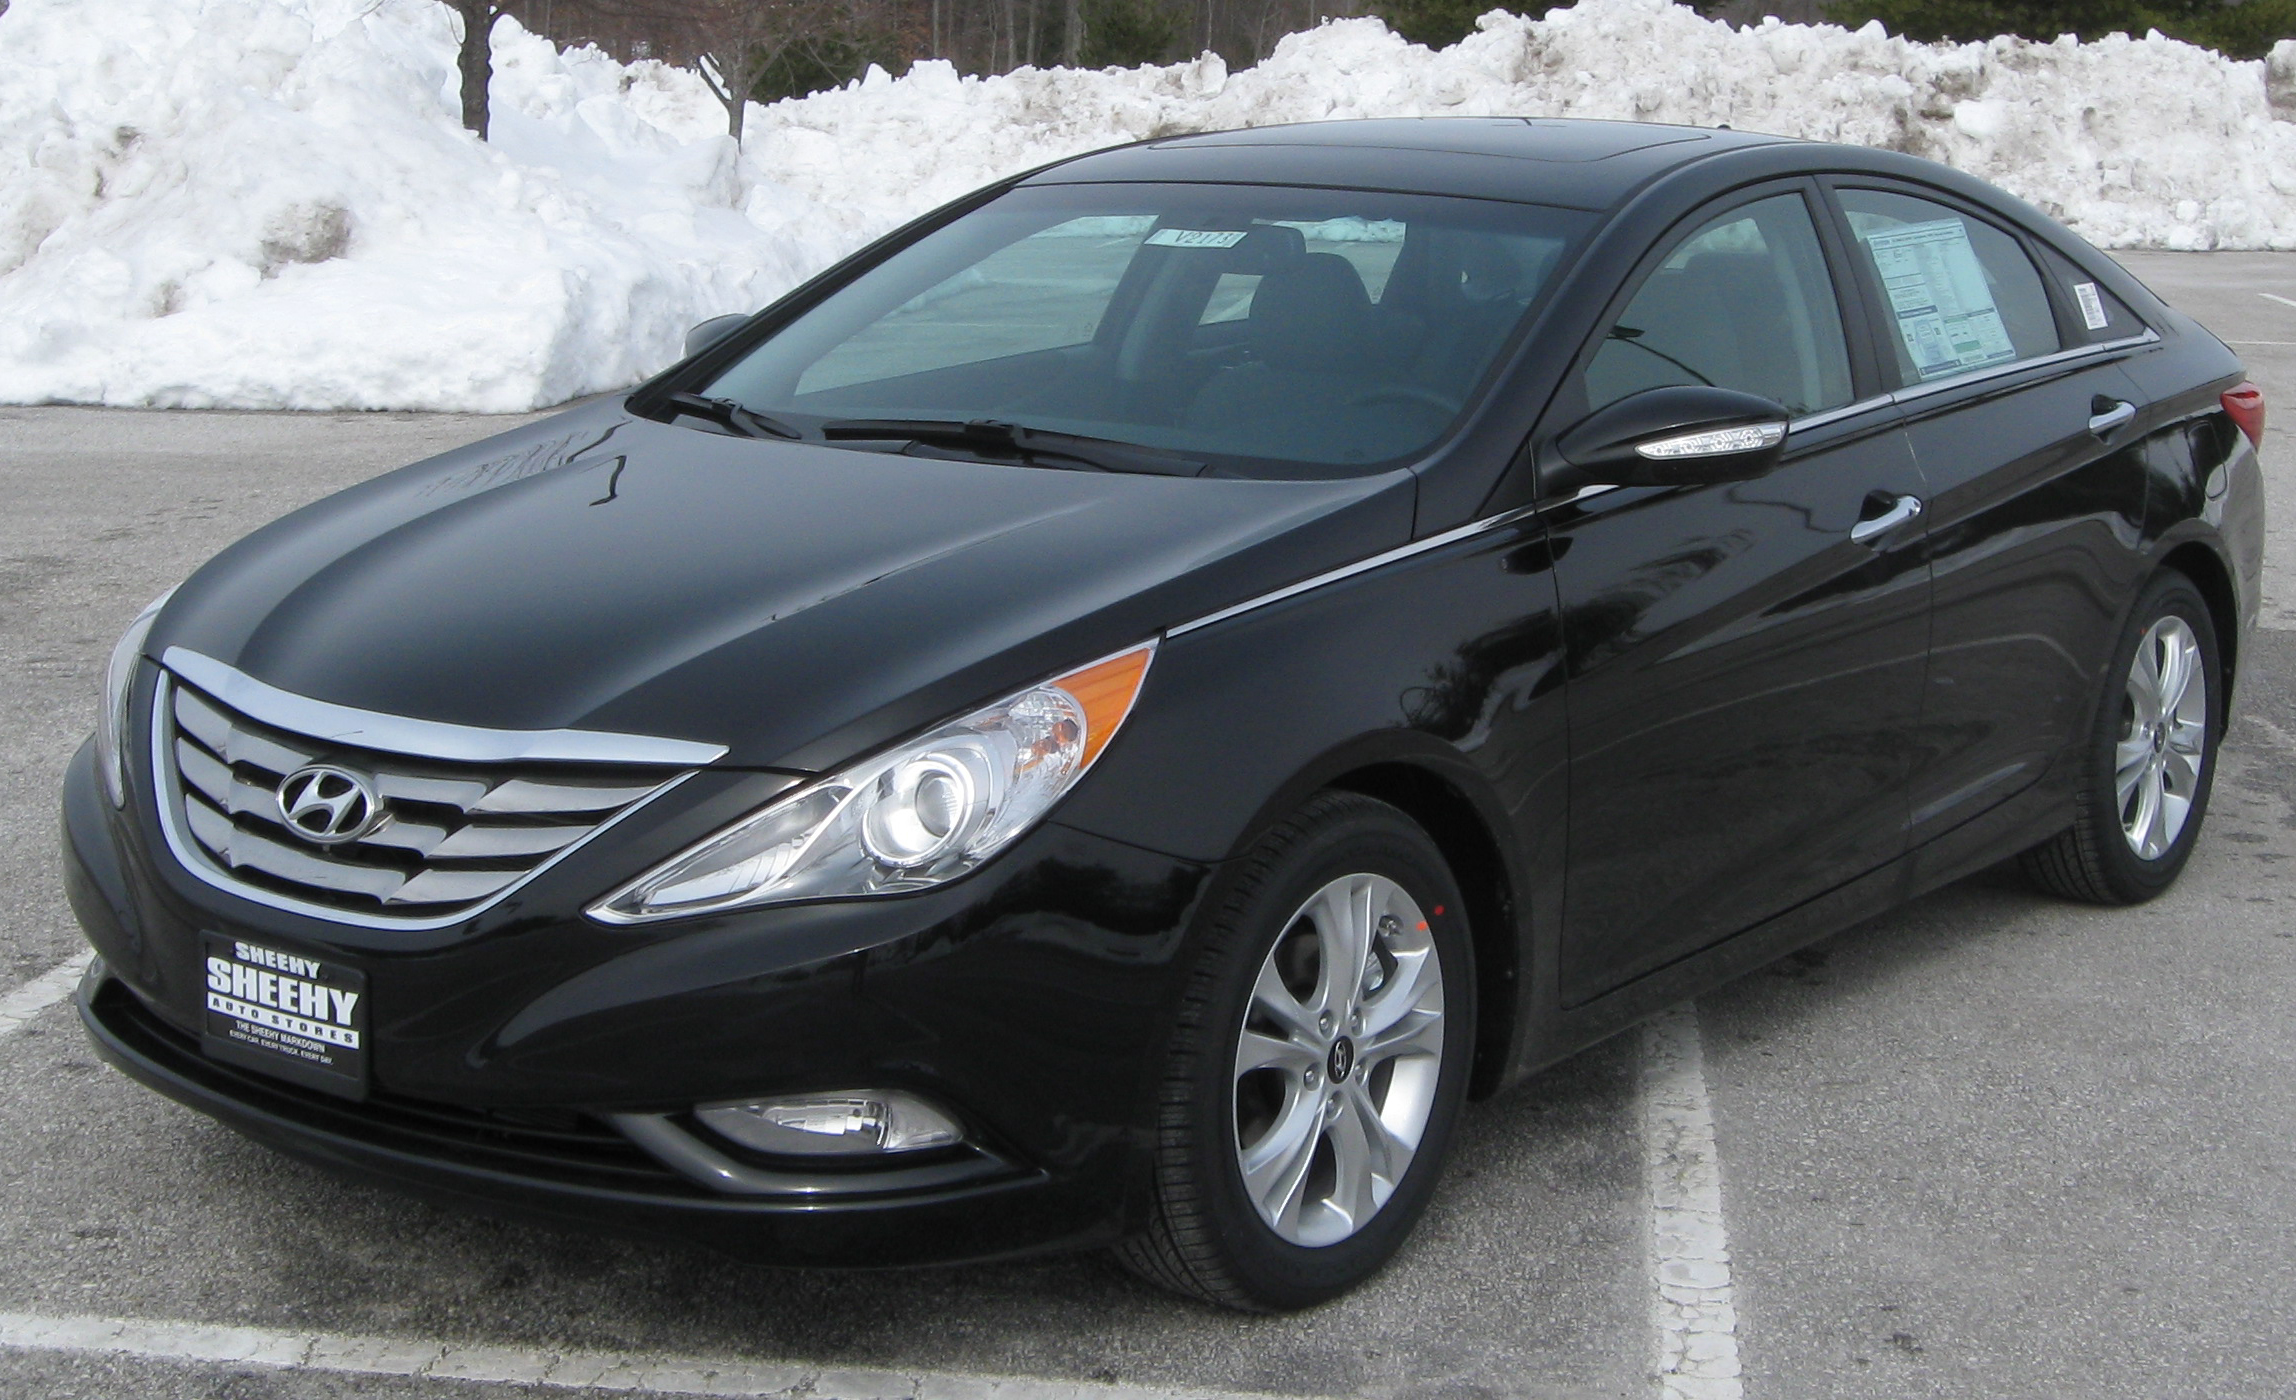 File:2011 Hyundai Sonata Limited 2    02 13 2010